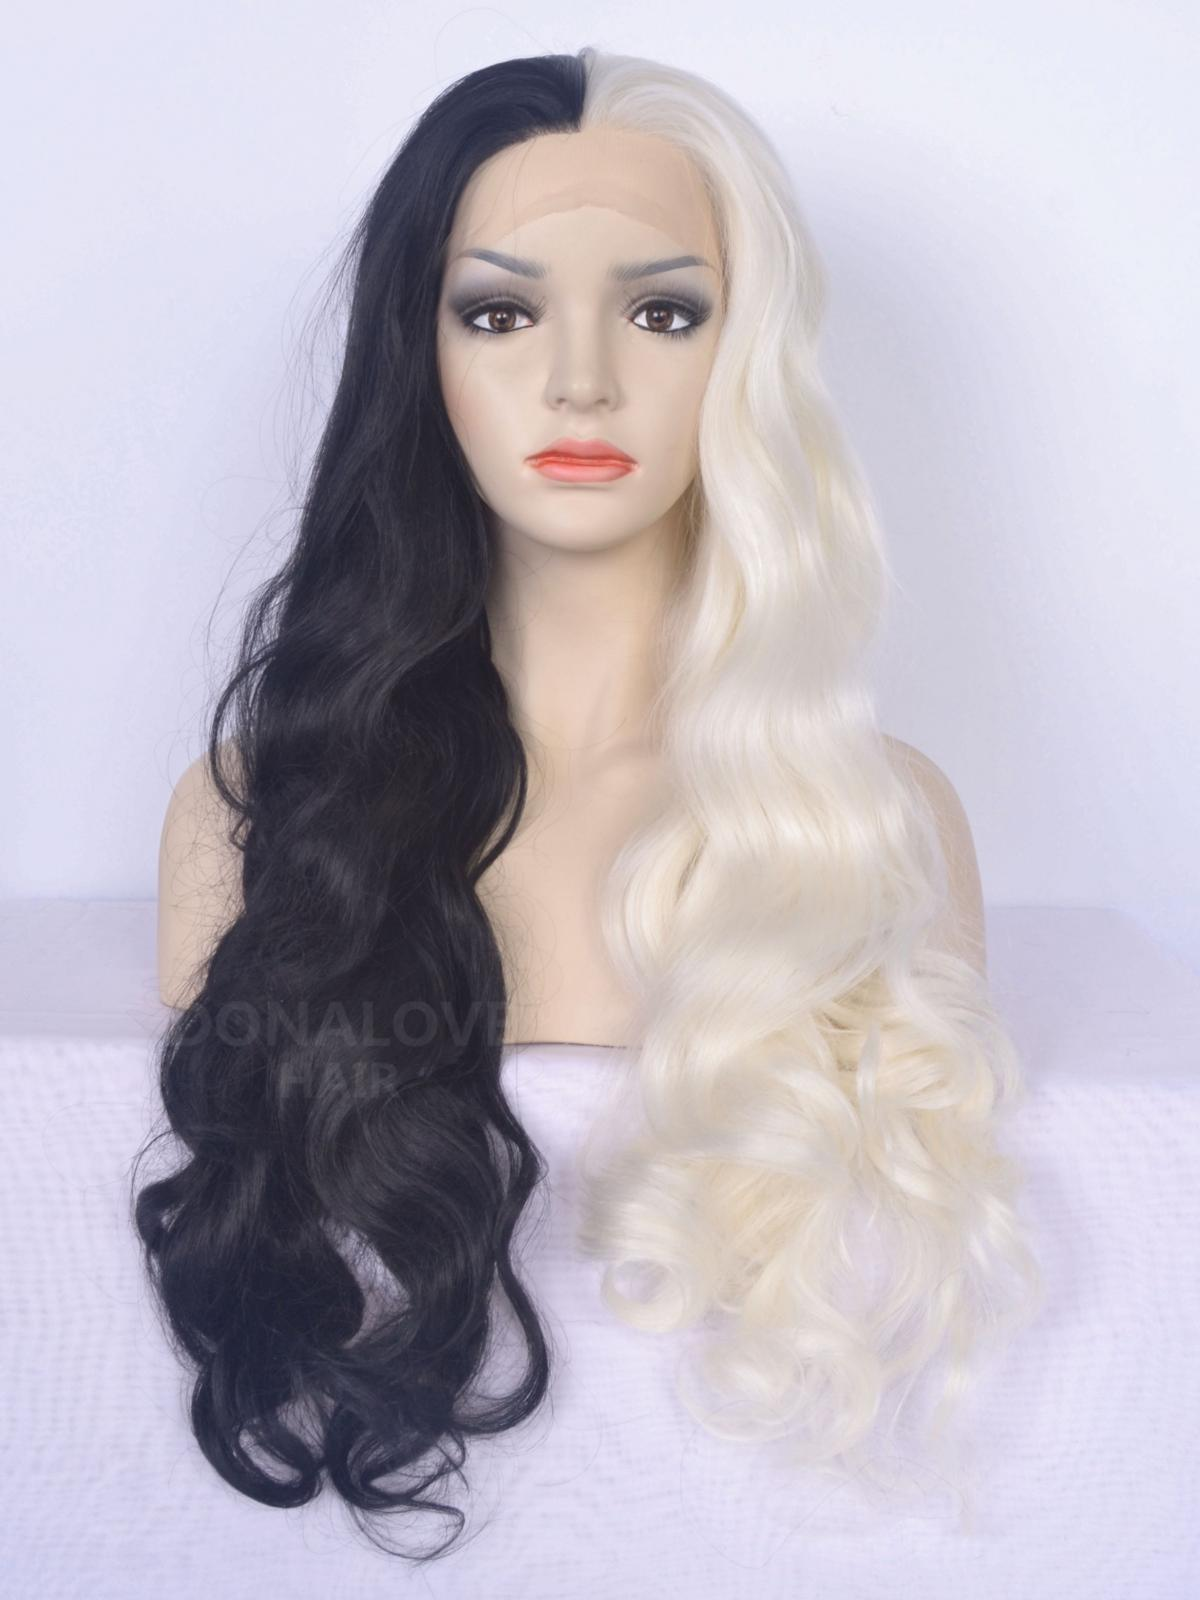 Half Black Half White Wavy Synthetic Lace Front Wig Sny093 Synthetic Wigs Donalovehair